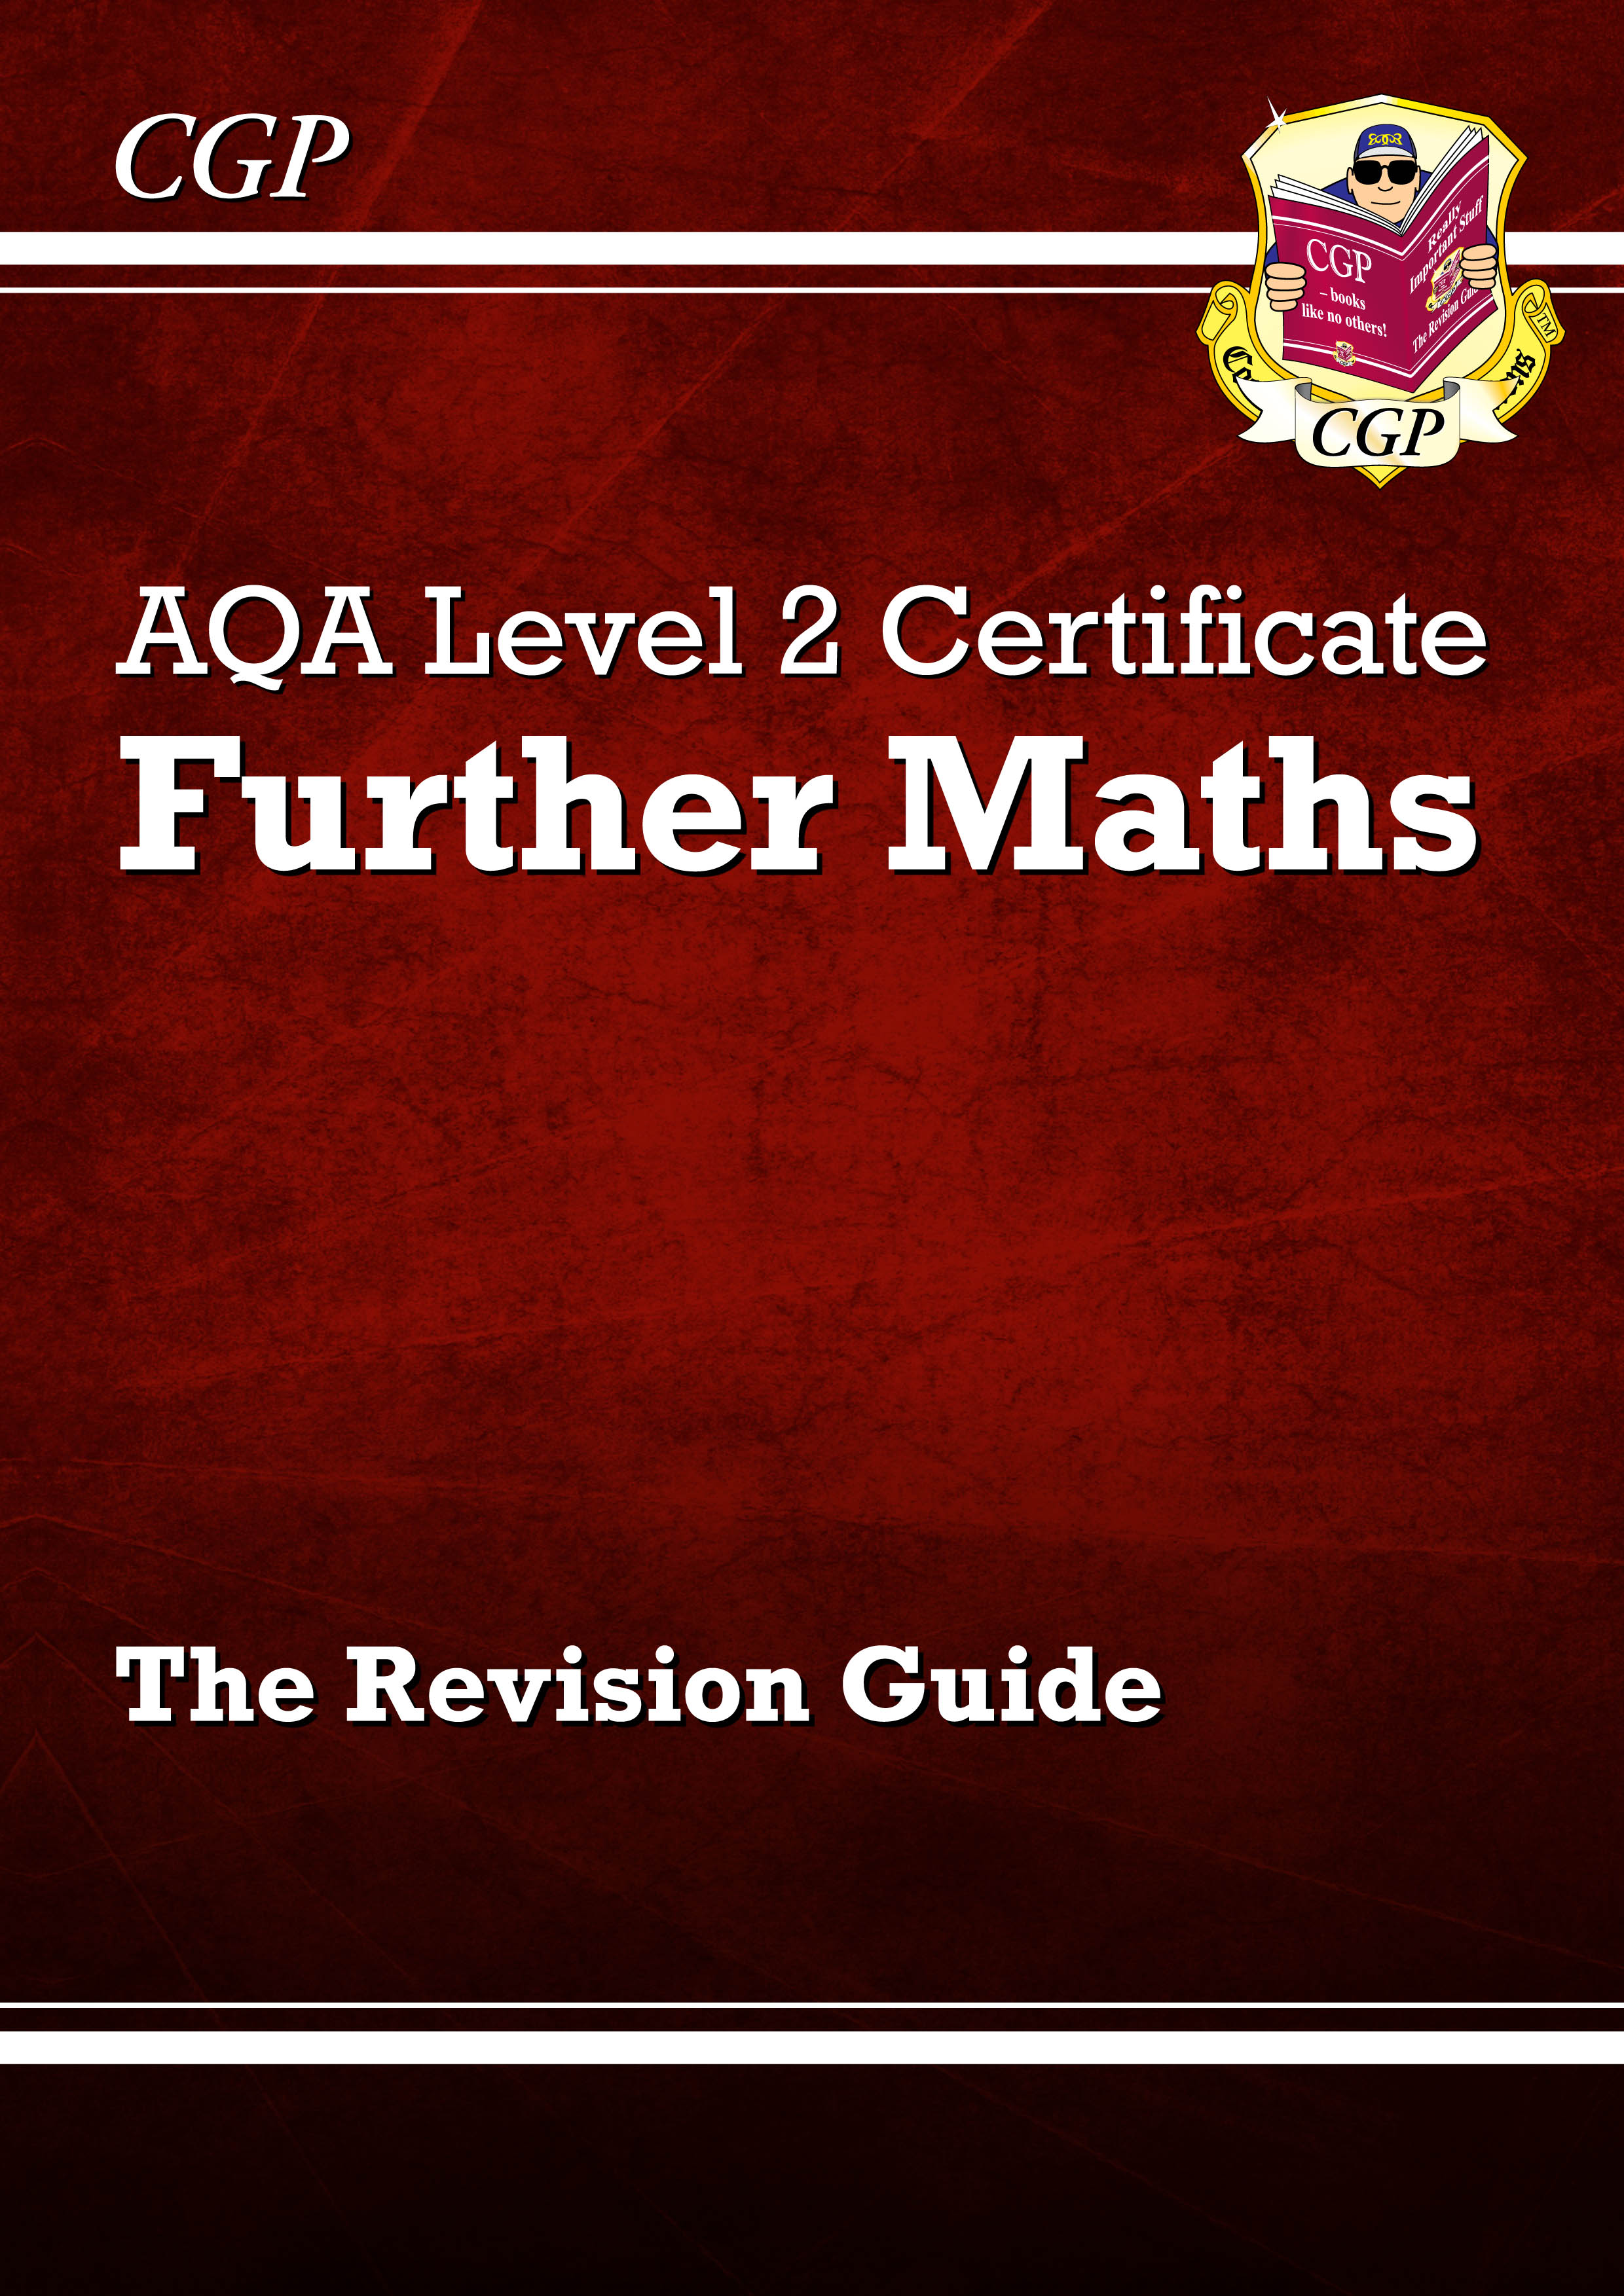 MARI41DK - AQA Level 2 Certificate in Further Maths - Revision Guide (A^-C course)